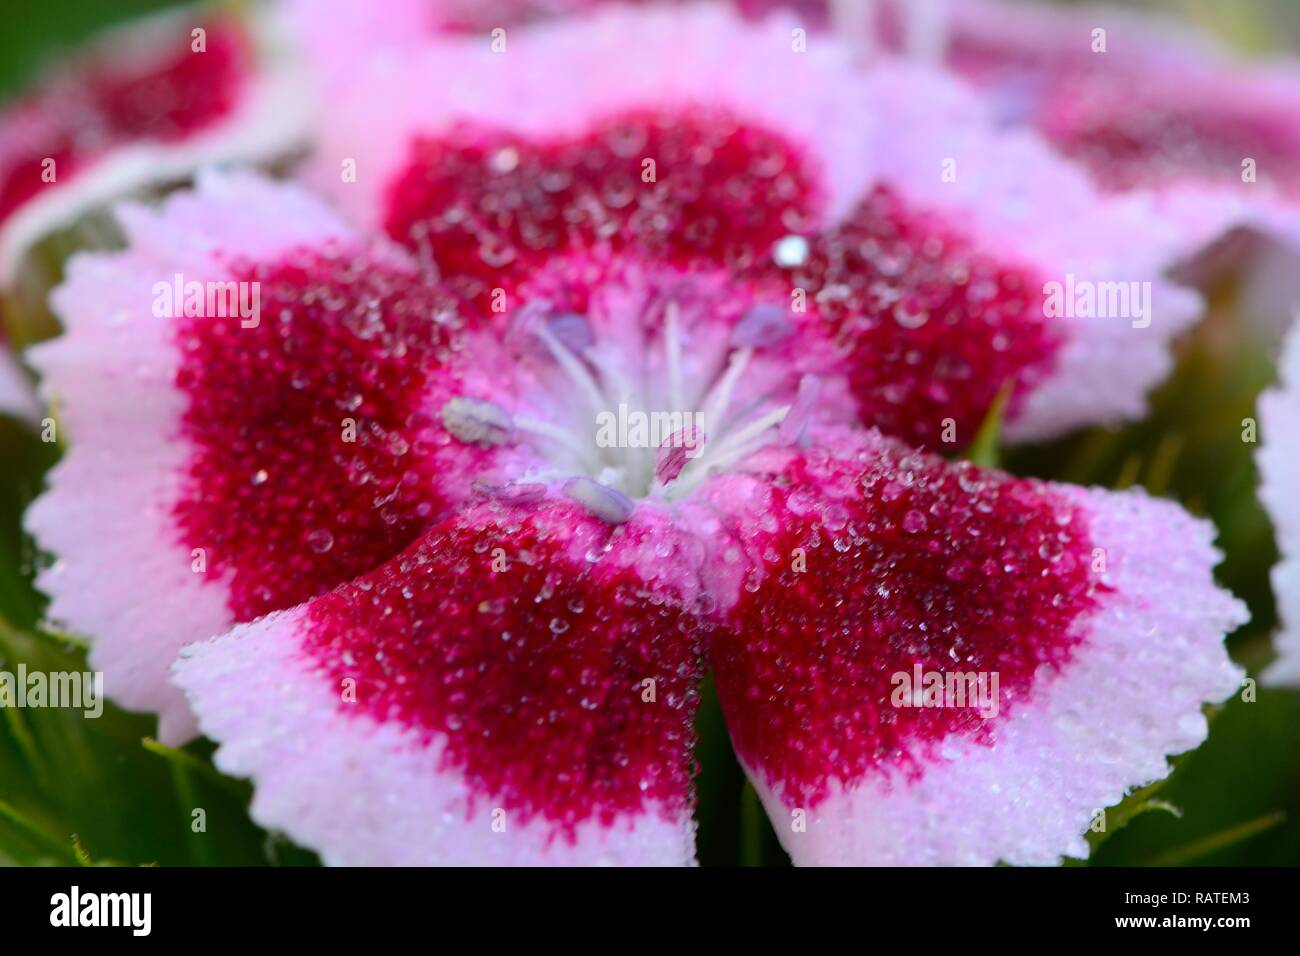 Macro shot of a pink and white sweet William (dianthus barbatus) flower covered in water droplets - Stock Image